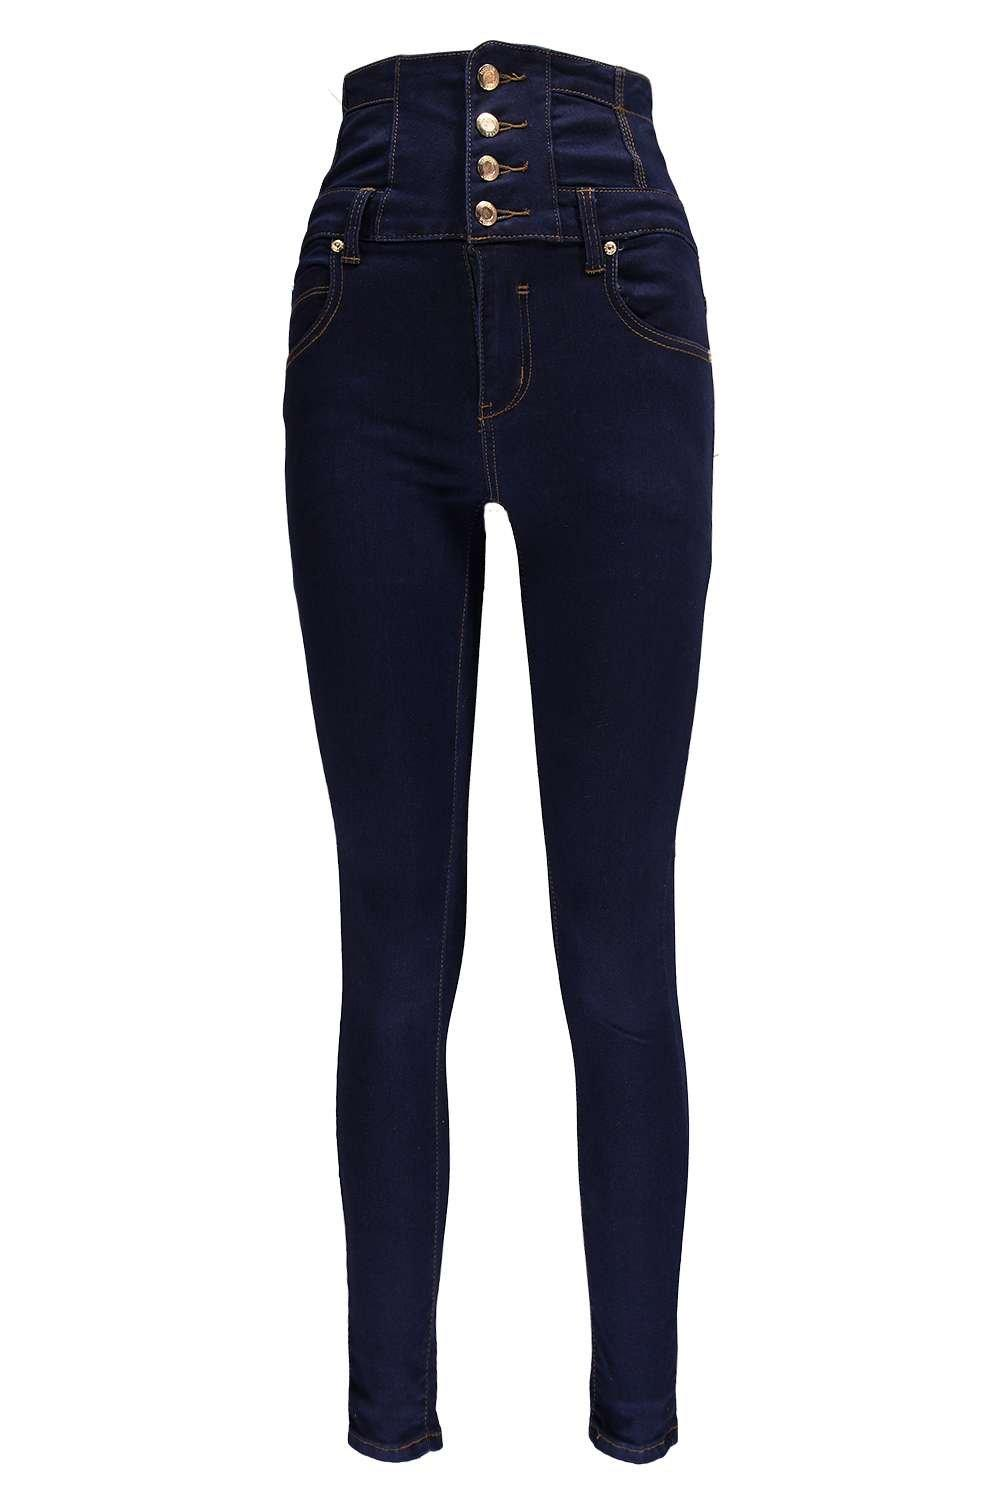 Sandy Super High Waisted Skinny Indigo Jeans | Boohoo